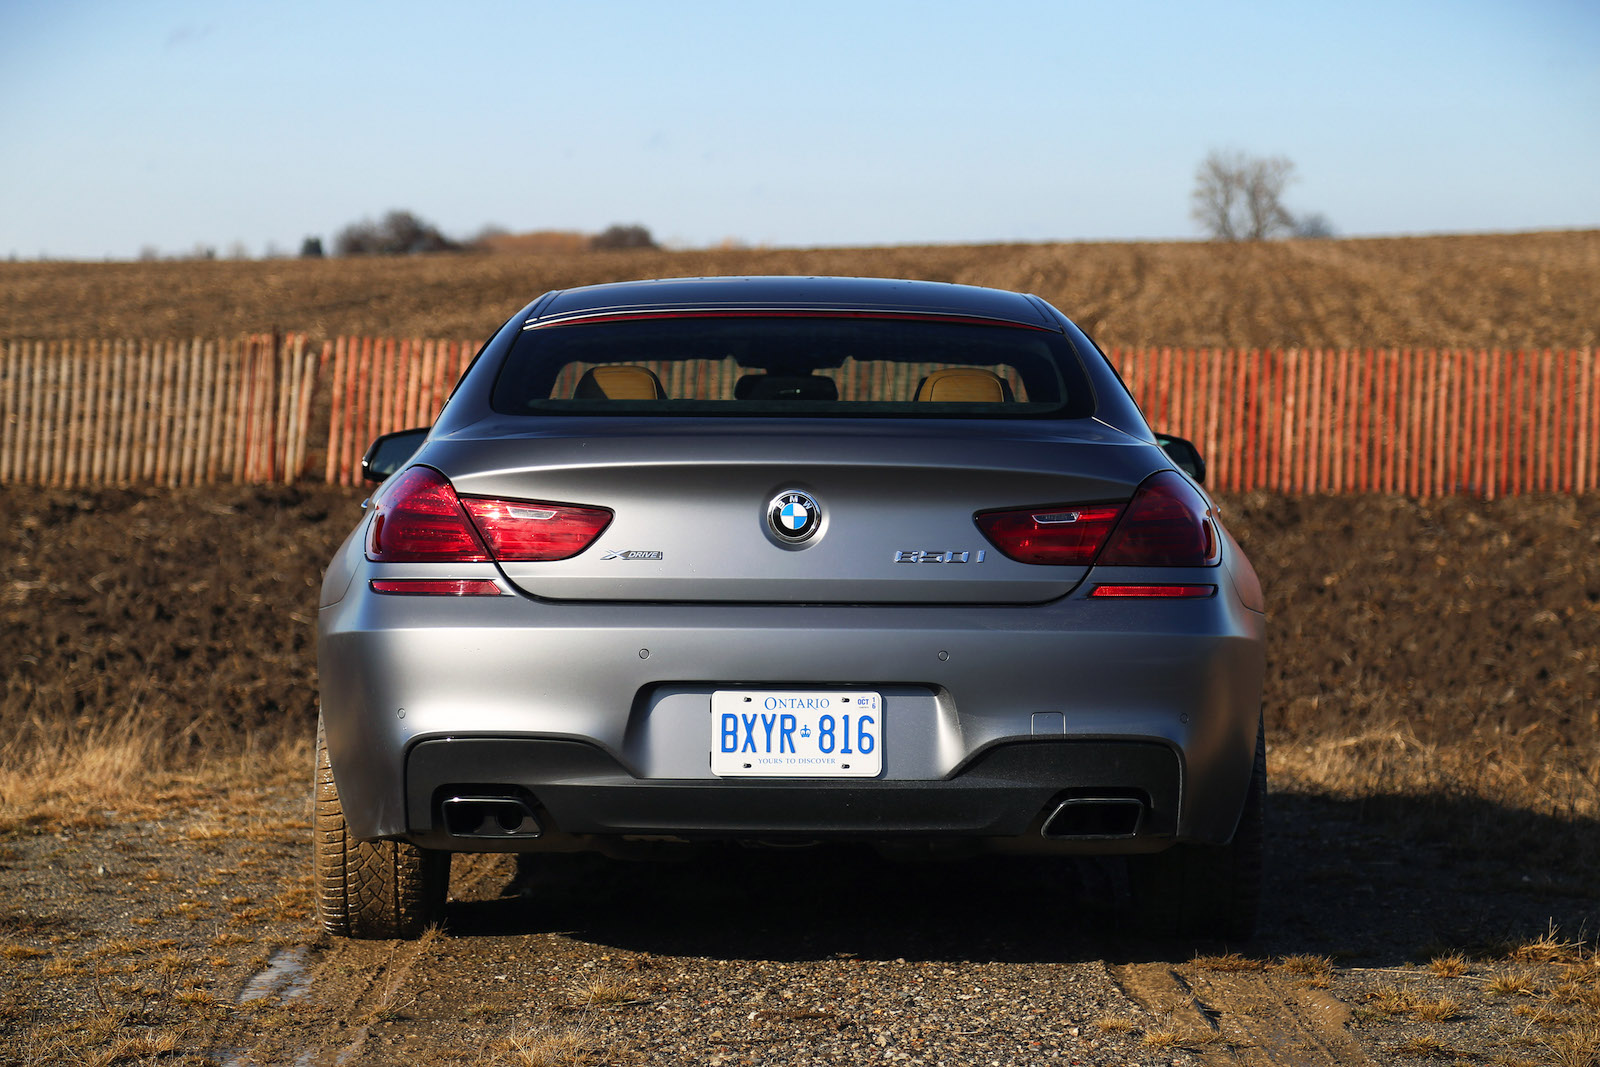 650i Gran Coupe >> Review: 2016 BMW 650i xDrive Gran Coupe | Canadian Auto Review